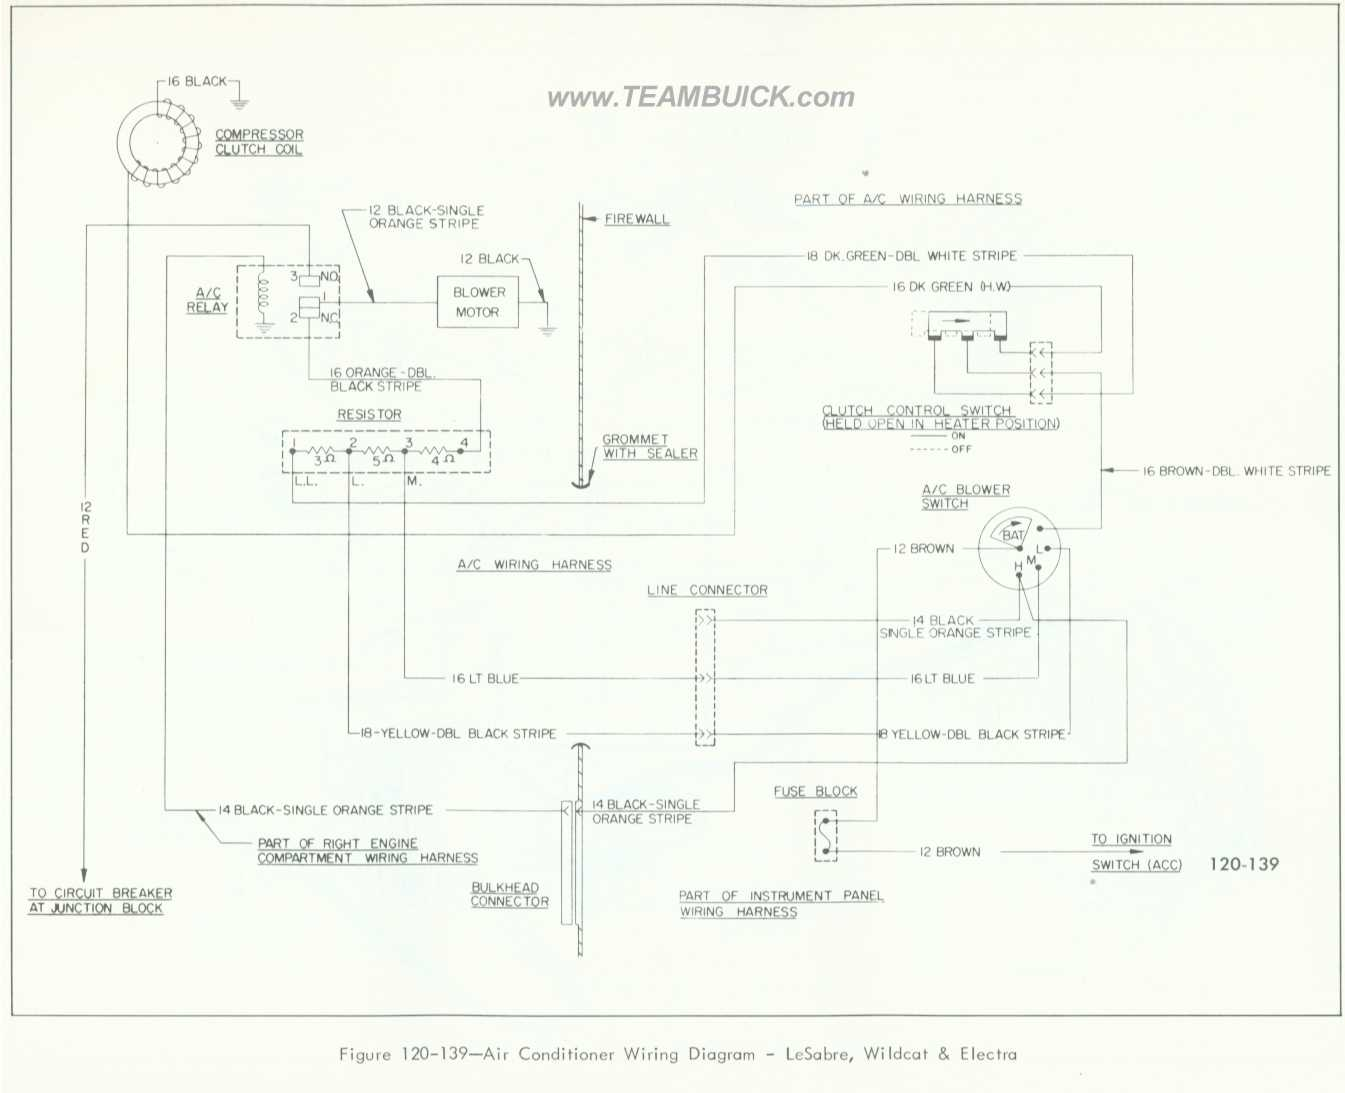 Wire Harness For 1966 Lesabre Custom : 36 Wiring Diagram